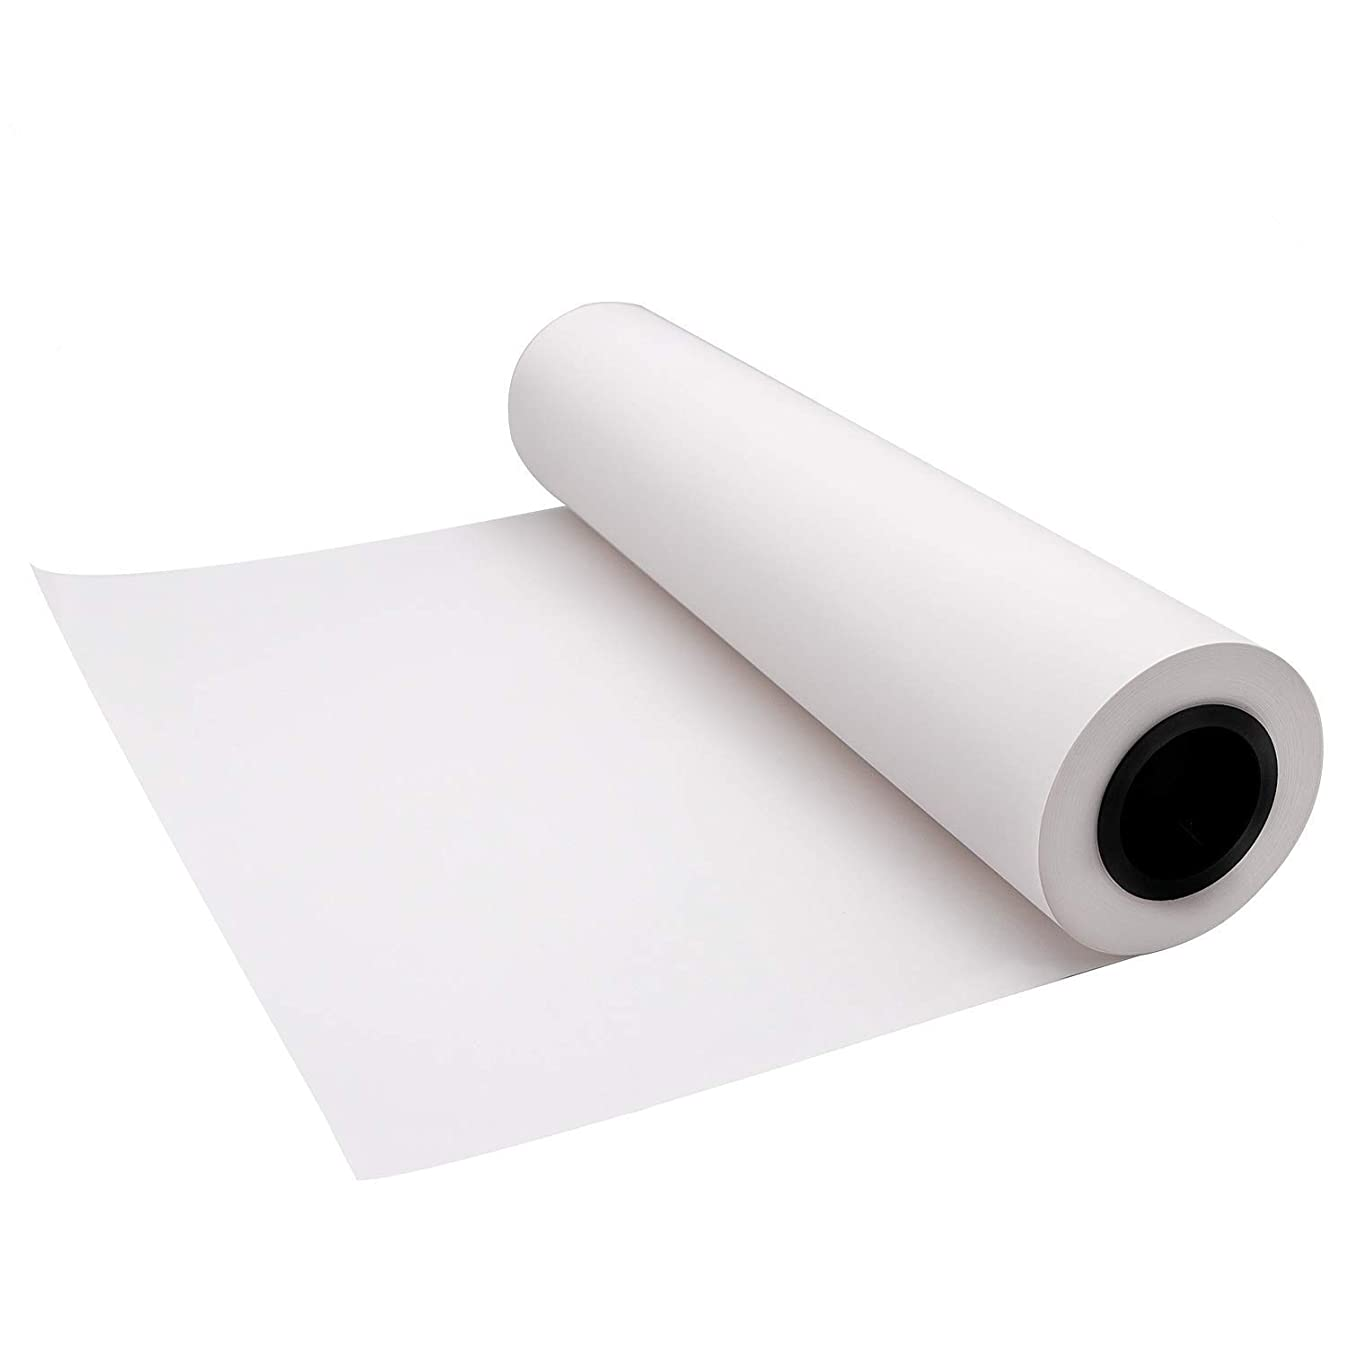 YRYM HT White Butcher Kraft Paper Roll - 18 inch x 175 Feet (2100 inch) - Food Grade FDA Approved – Great Smoking White Wrapping Paper for Meat of All Varieties –Unwaxed and Uncoated